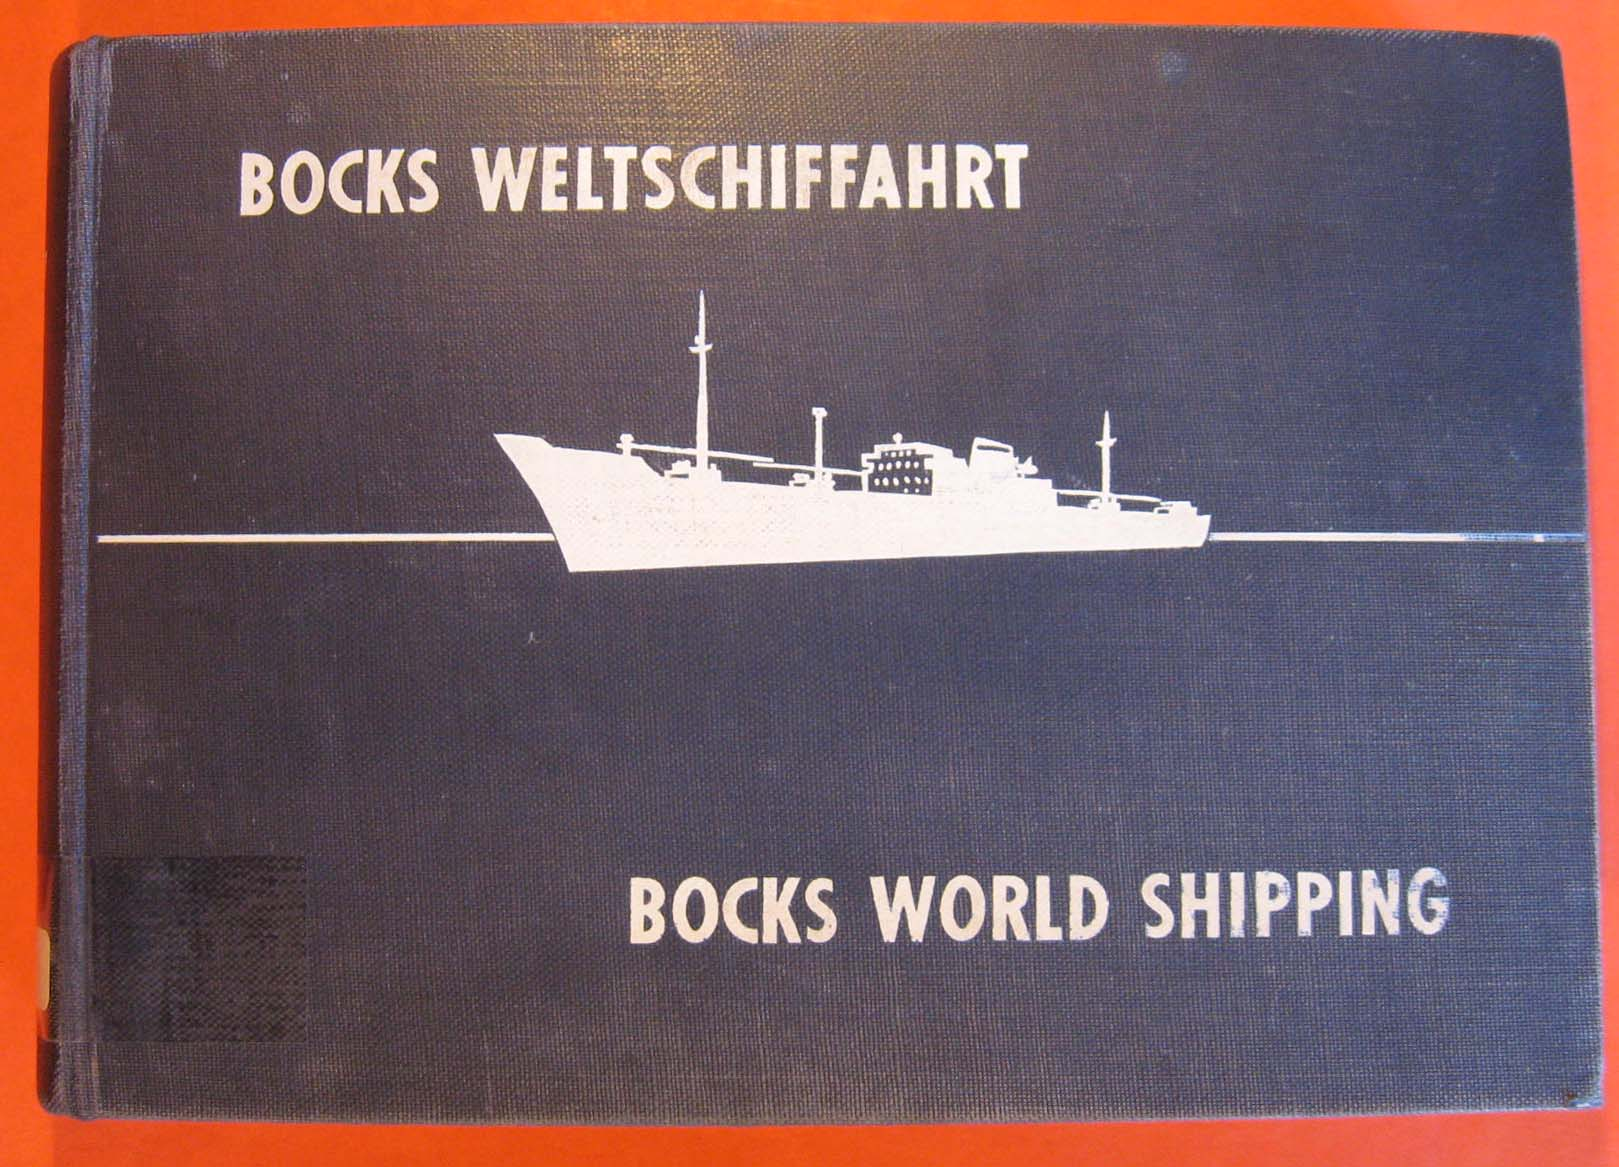 Image for Bocks Weltschiffahrt/Bocks World Shipping